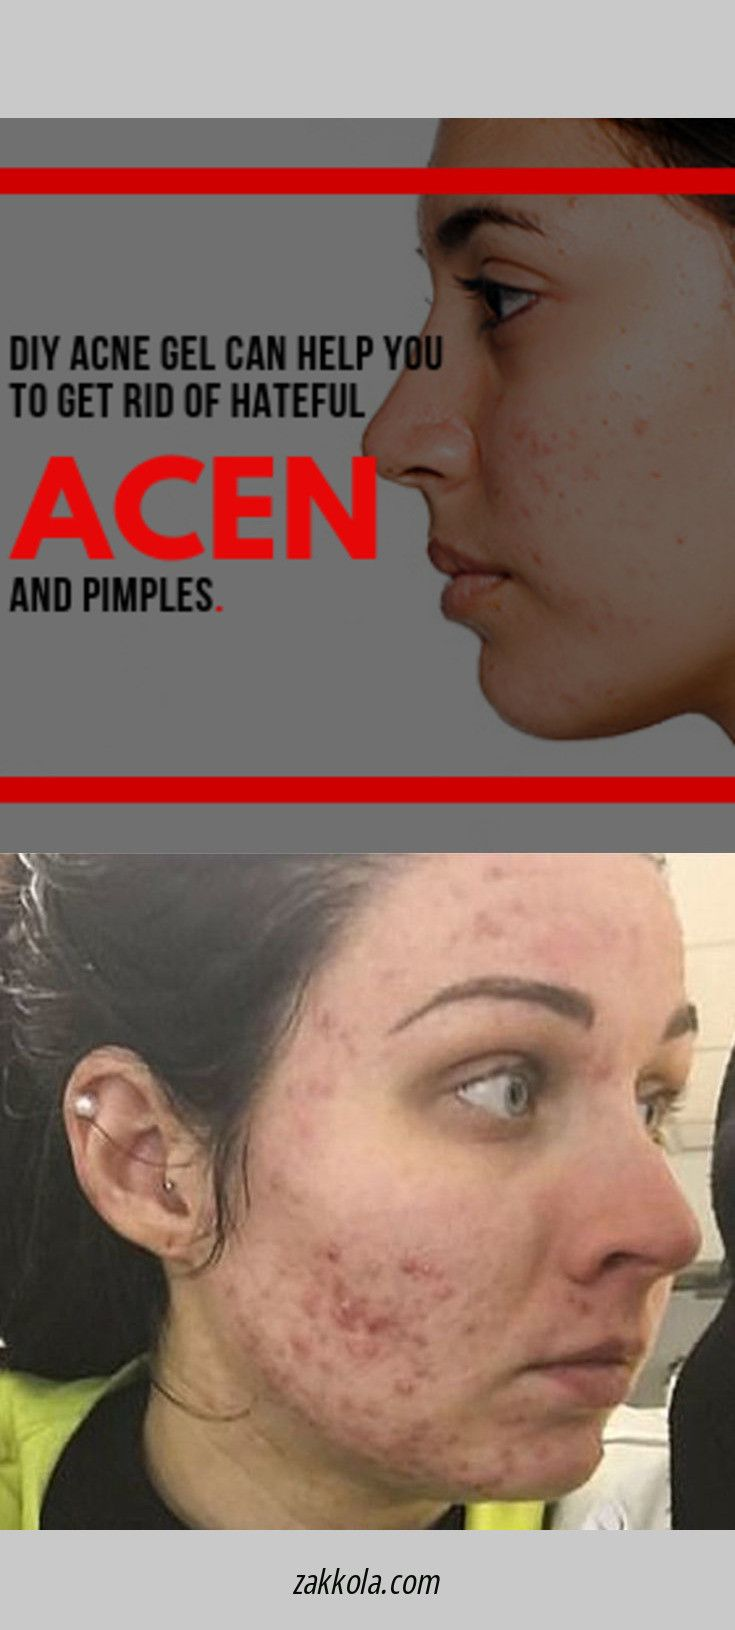 Find more information on acne. Check the webpage …